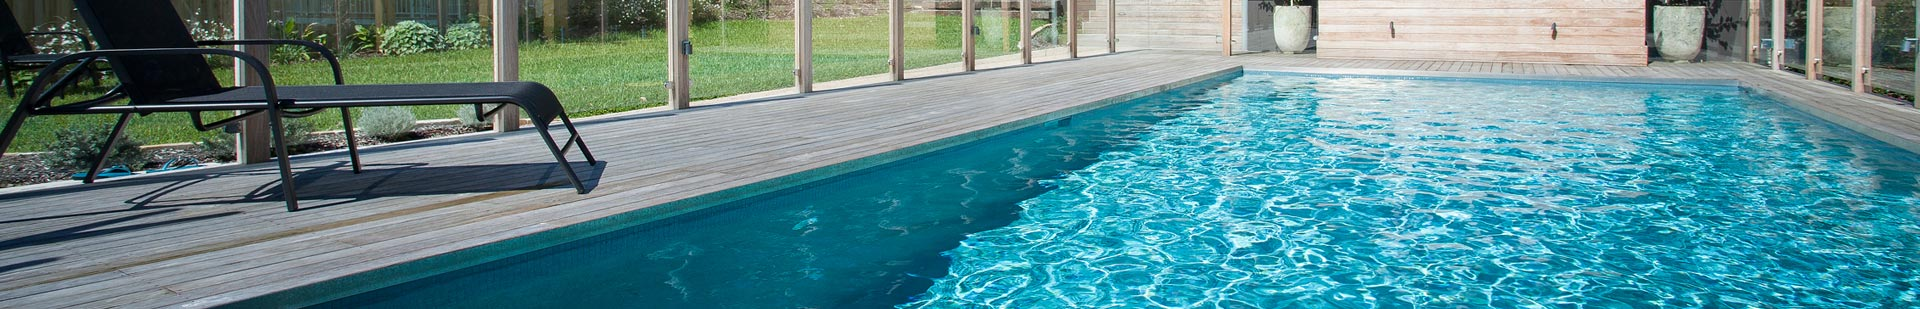 Swimming Pool Prices Swimming Pool Construction Costs Sydney